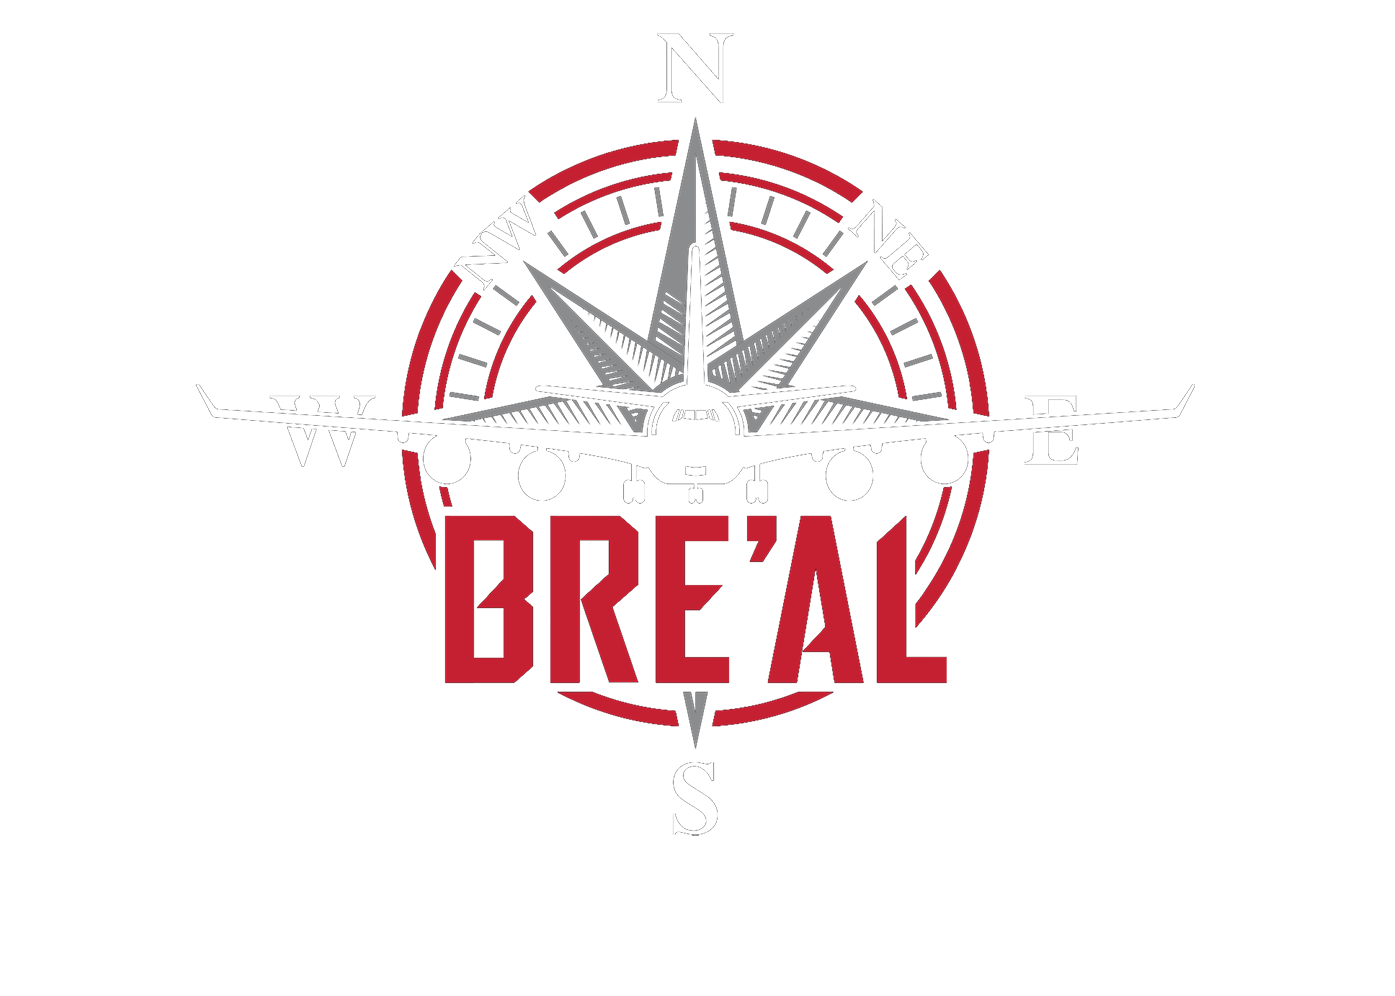 Bre'al Products Logo